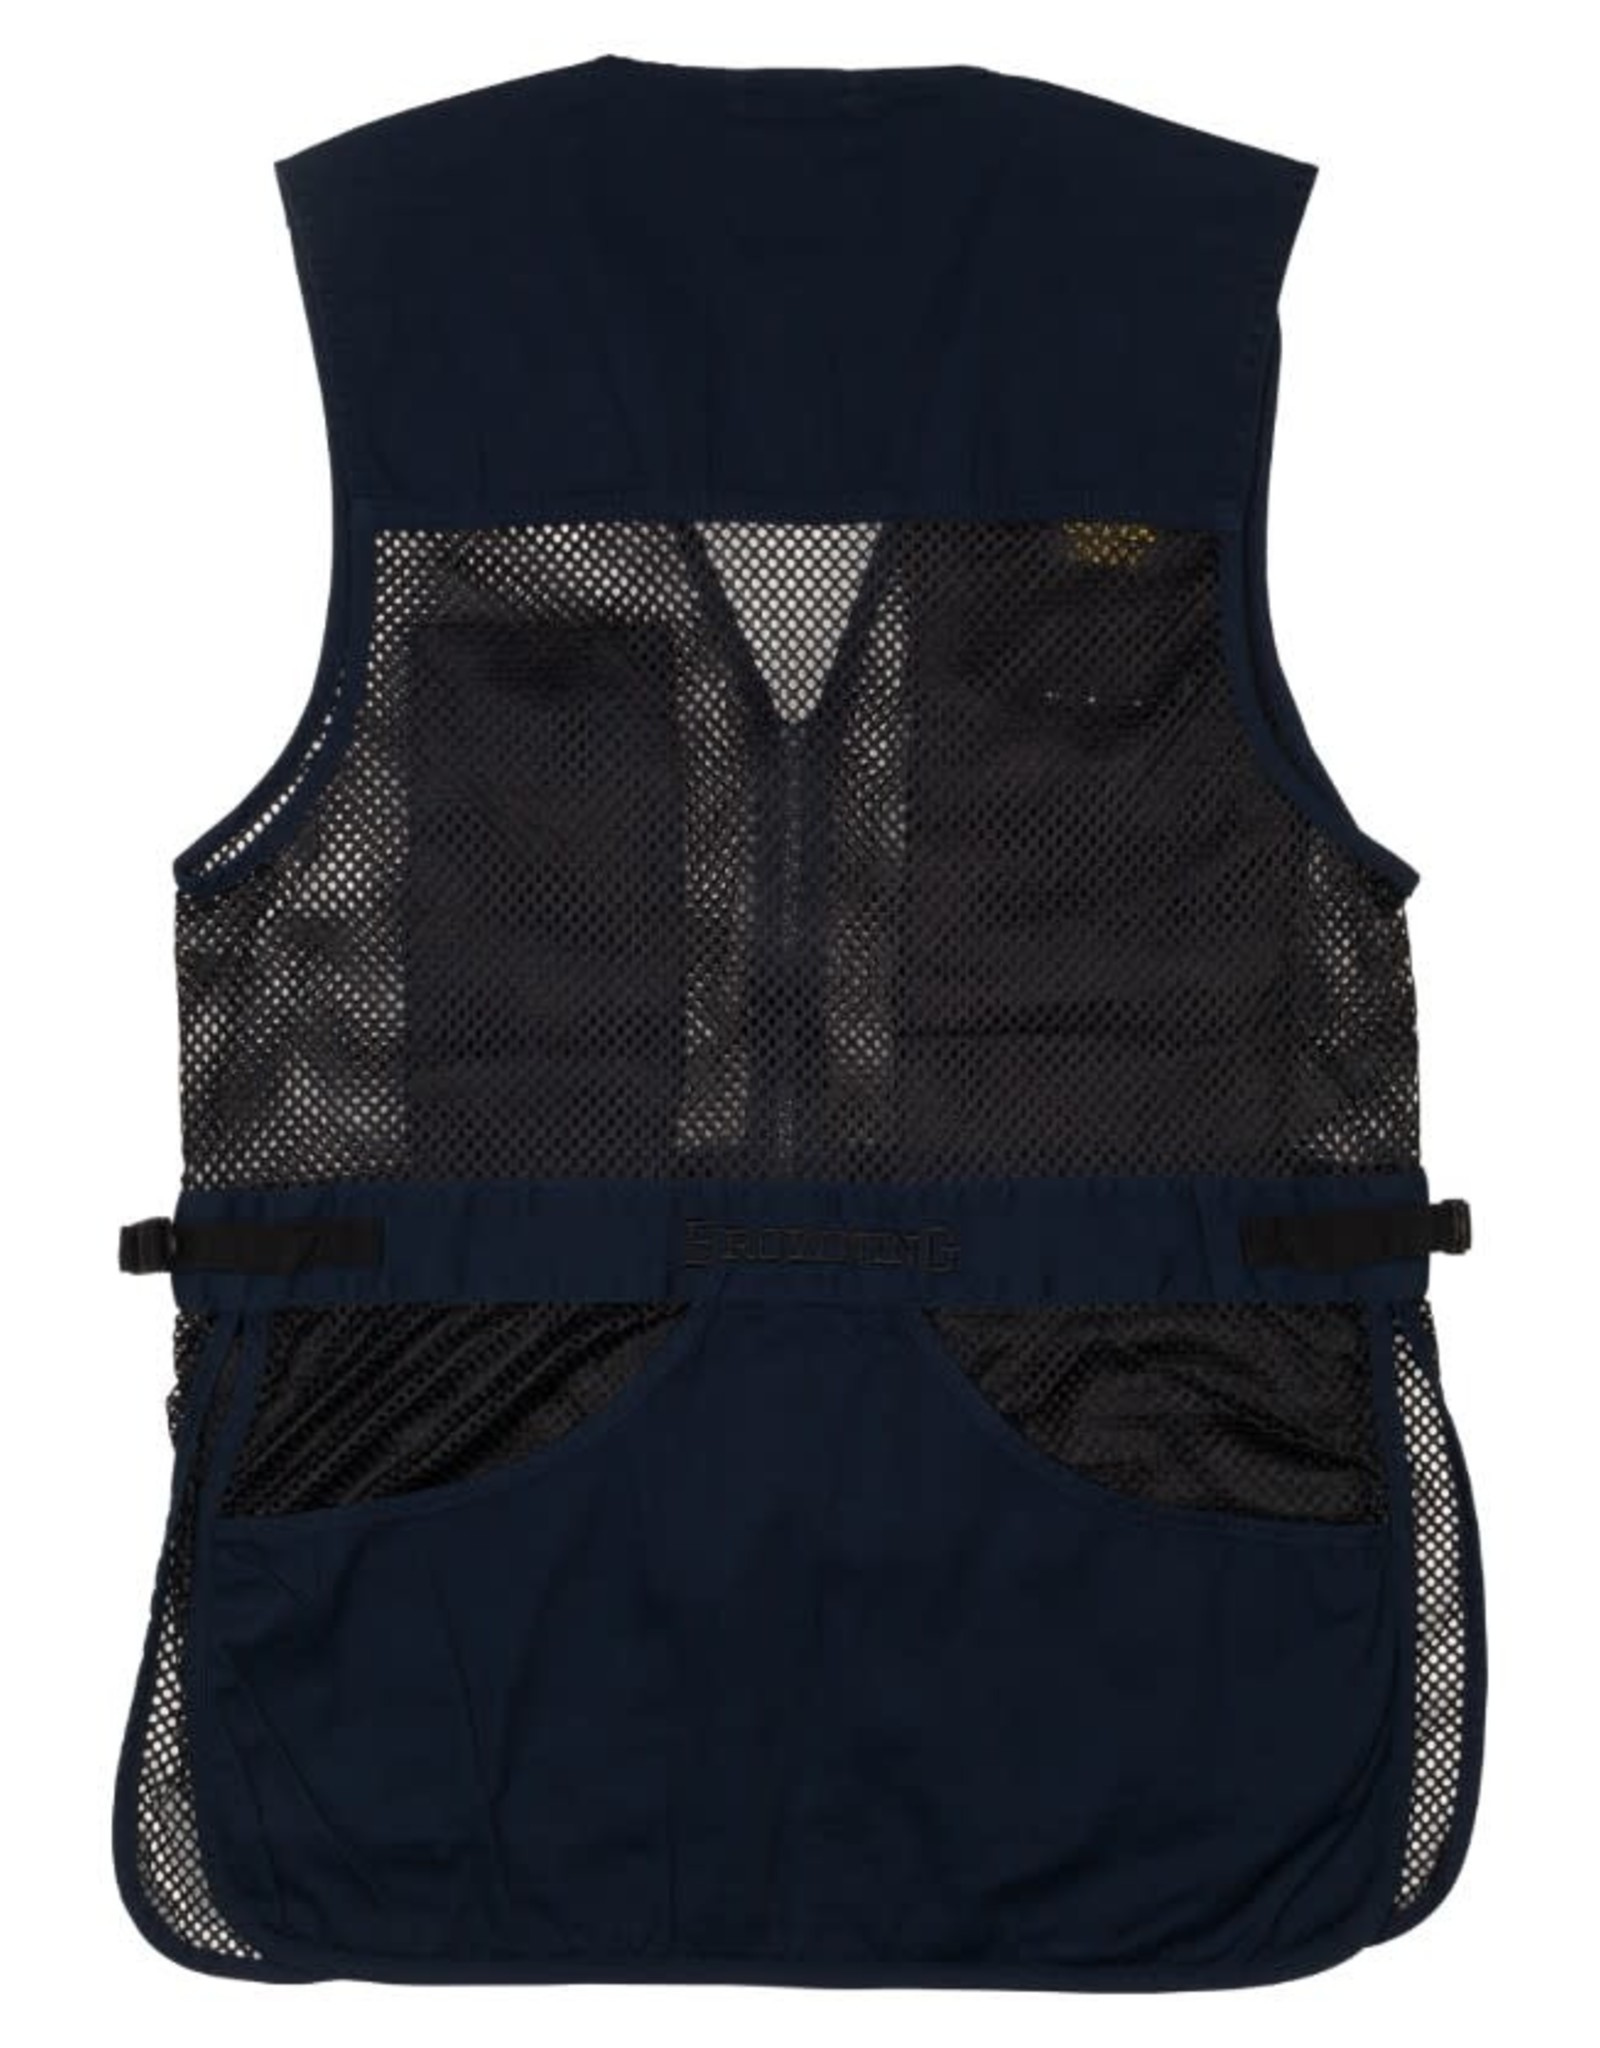 Copy of Browning Trapper Creek Vest - Navy/Blk - XXL